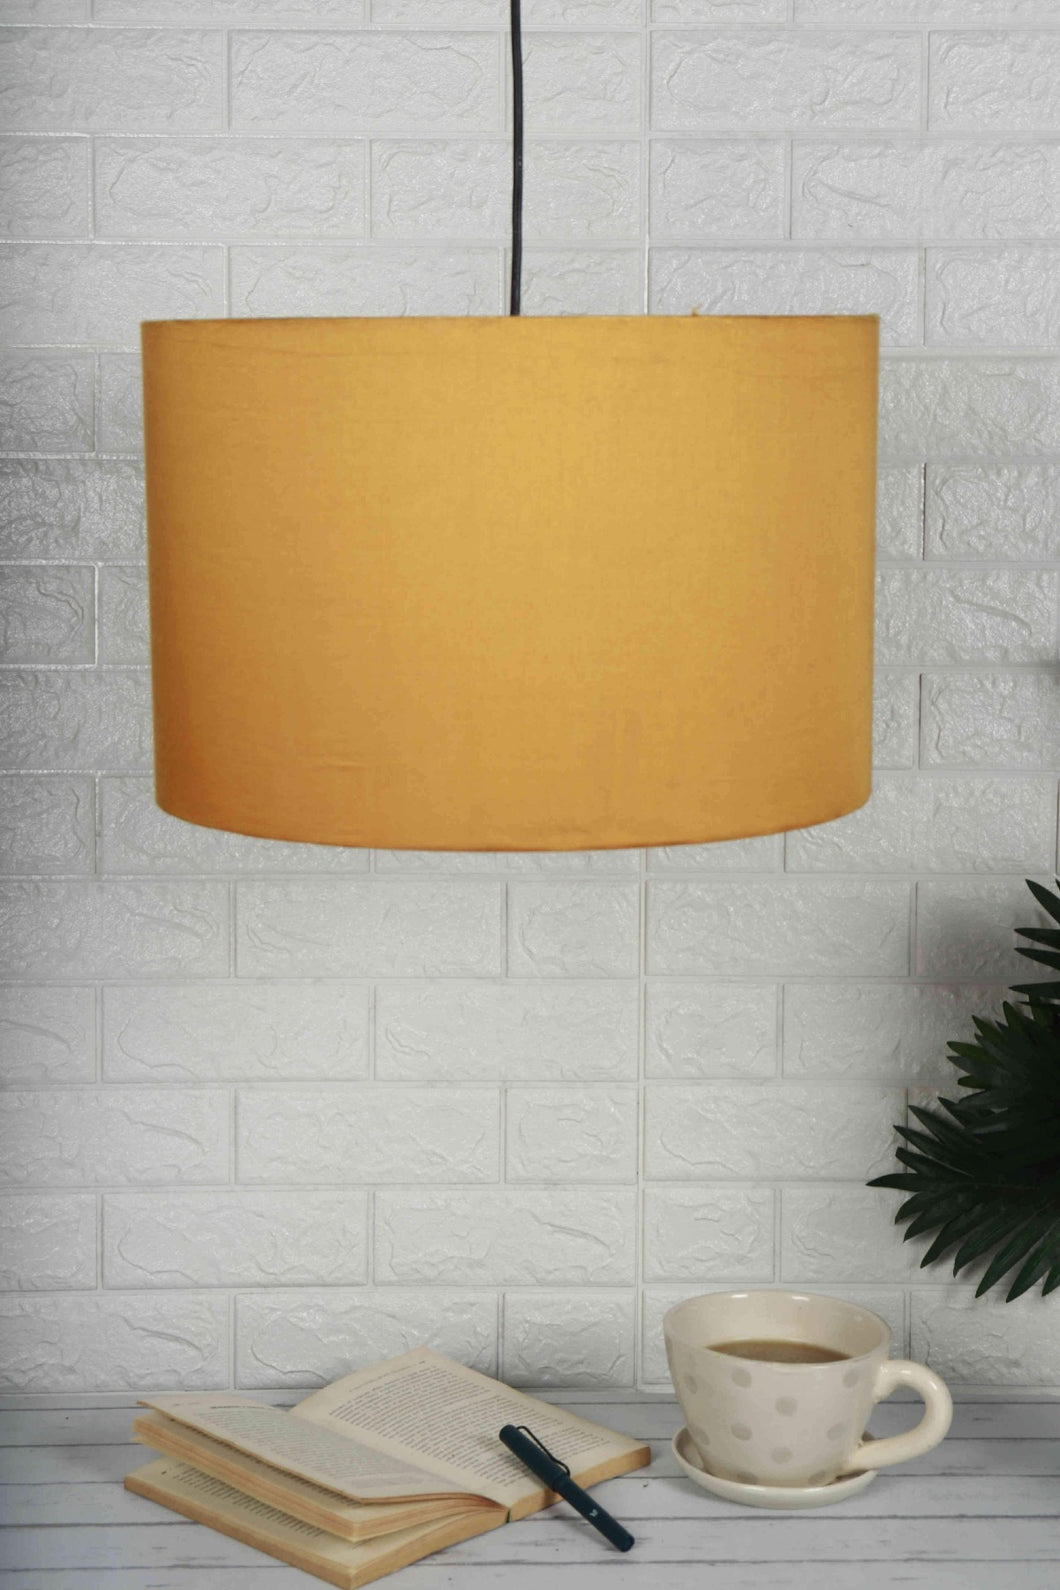 Big Yellow Color Hanging Lampshade for home decor